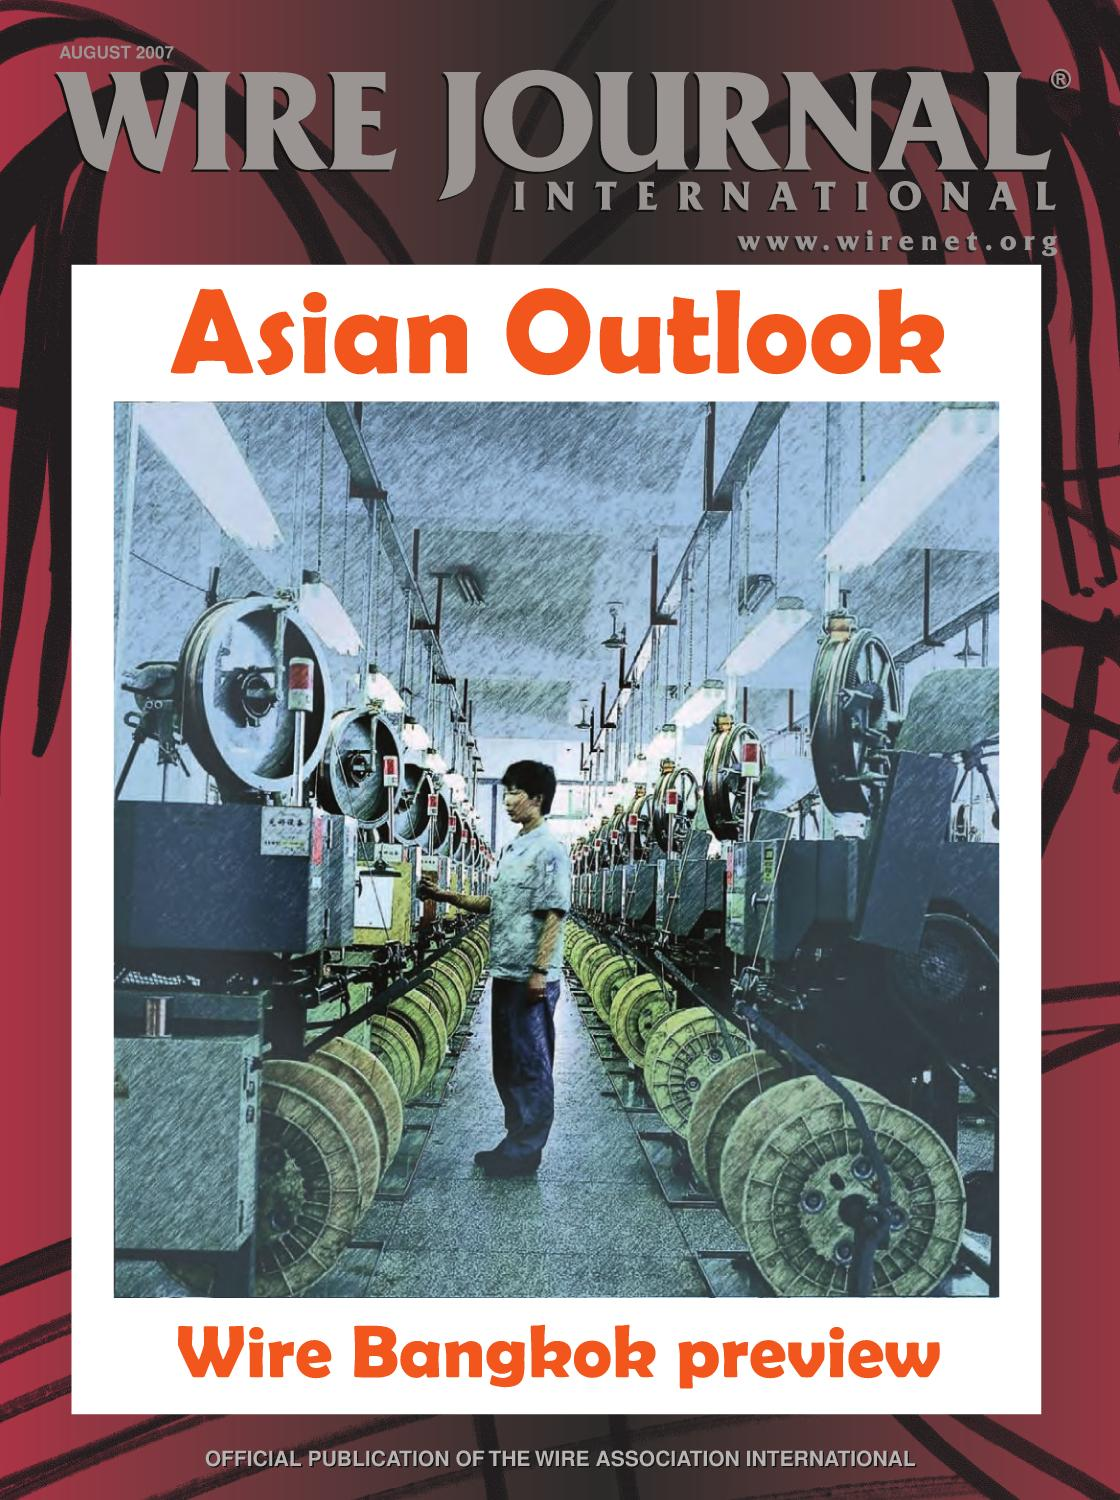 Asian Outlook by Wire Journal International, Inc. - issuu